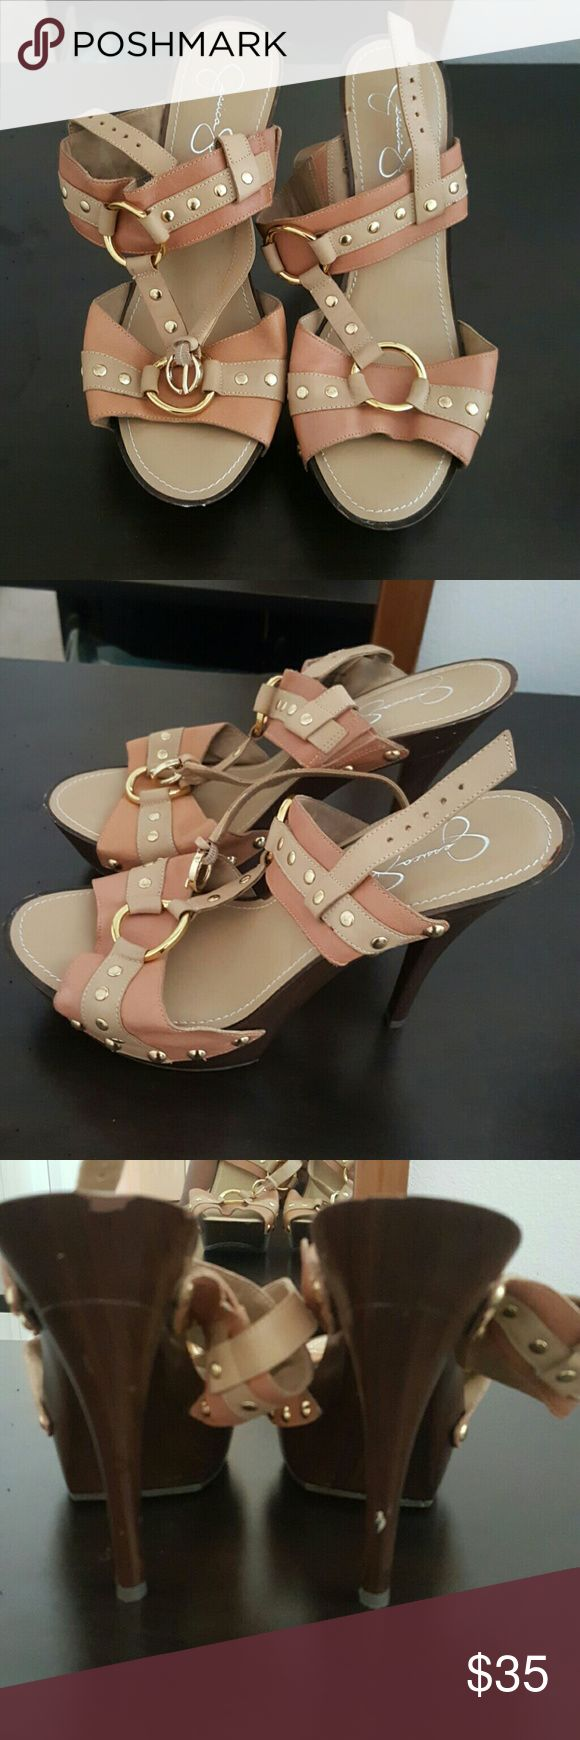 Tan leather Jessica Simpson sandals Tan Jessica Simpson harness sandals with gold hardware and strap around ankle. Jessica Simpson Shoes Sandals